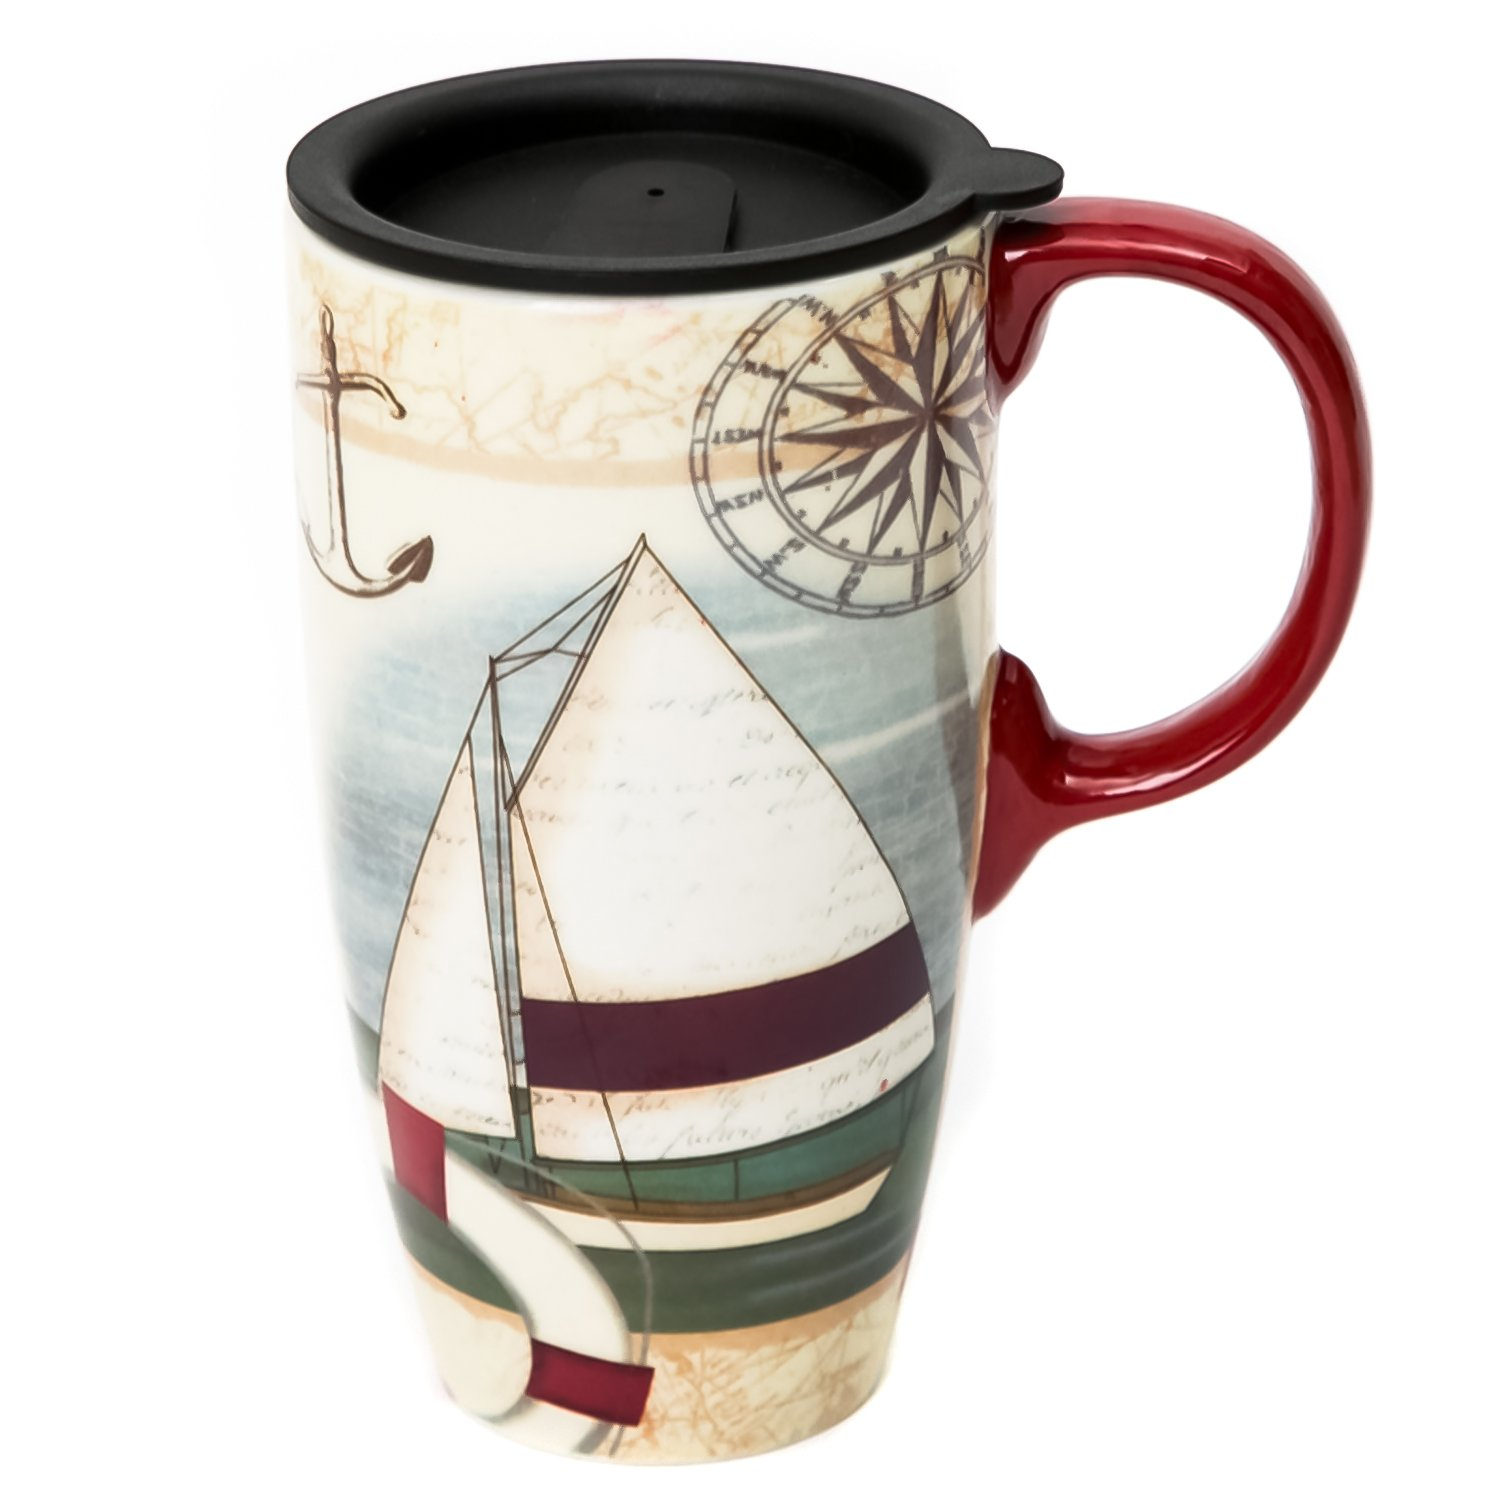 CEDAR HOME Travel Coffee Ceramic Mug Porcelain Latte Tea Cup With Lid in Gift Box 17oz. Sailboat